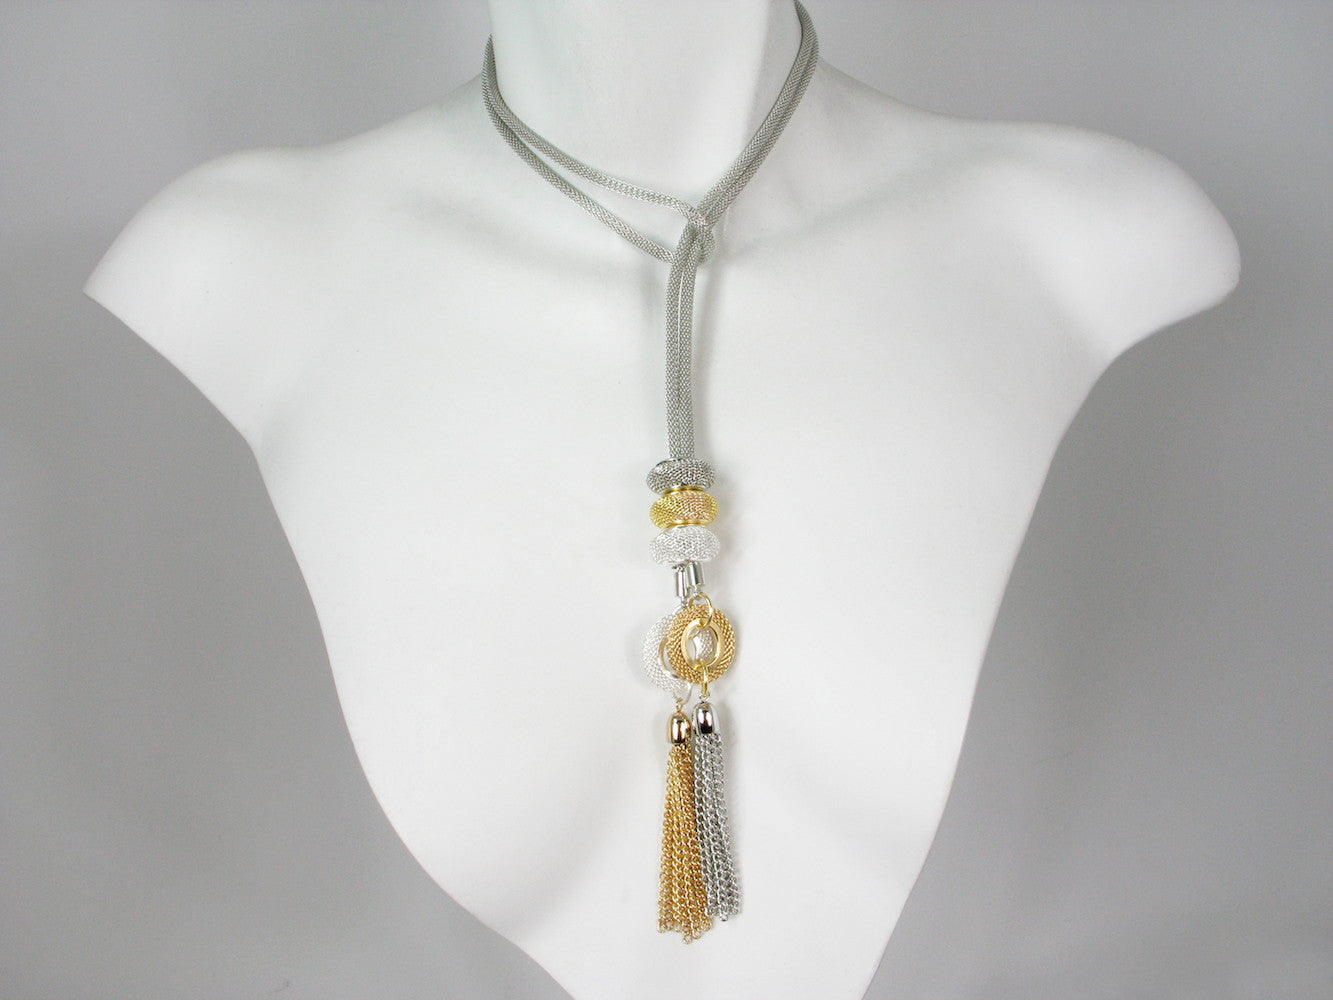 2-Way Mesh Slide Necklace with Circle & Tassel Ends | Erica Zap Designs